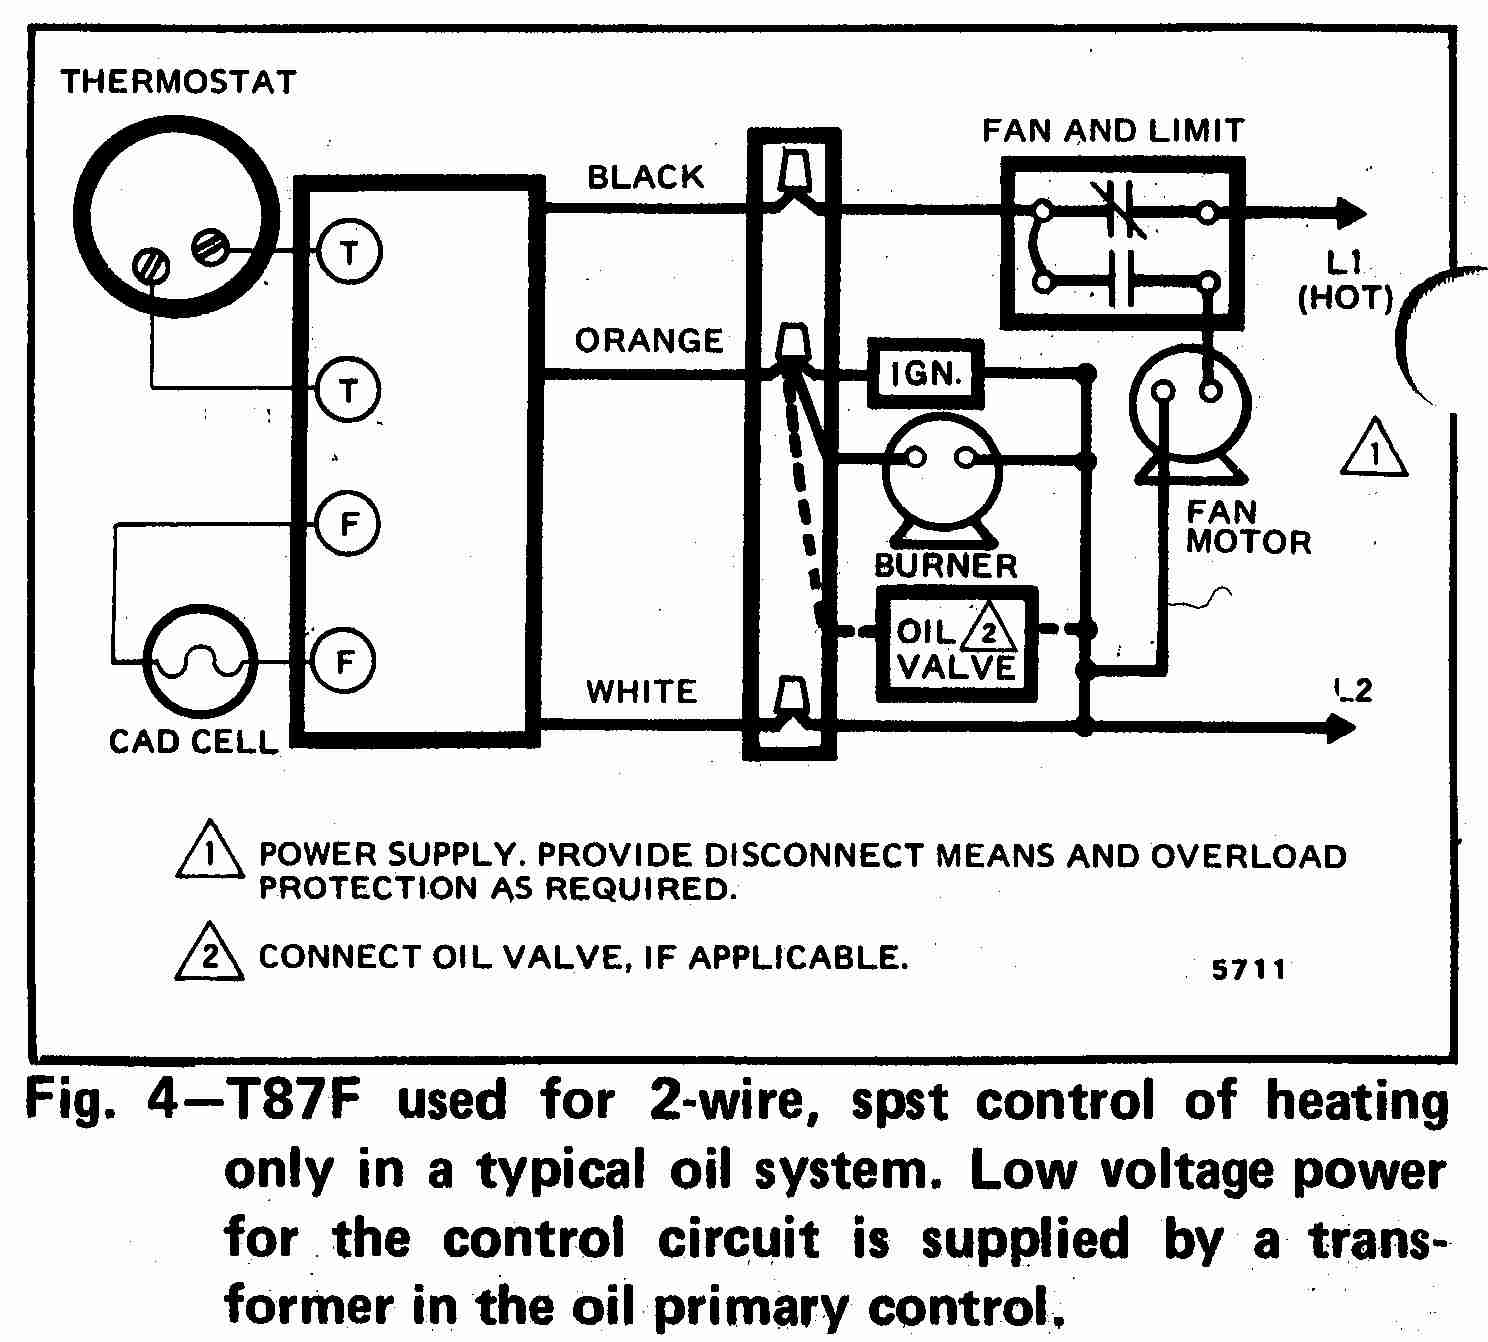 TT_T87F_0002_2W_DJF room thermostat wiring diagrams for hvac systems Blower Motor Relay Diagram at gsmx.co